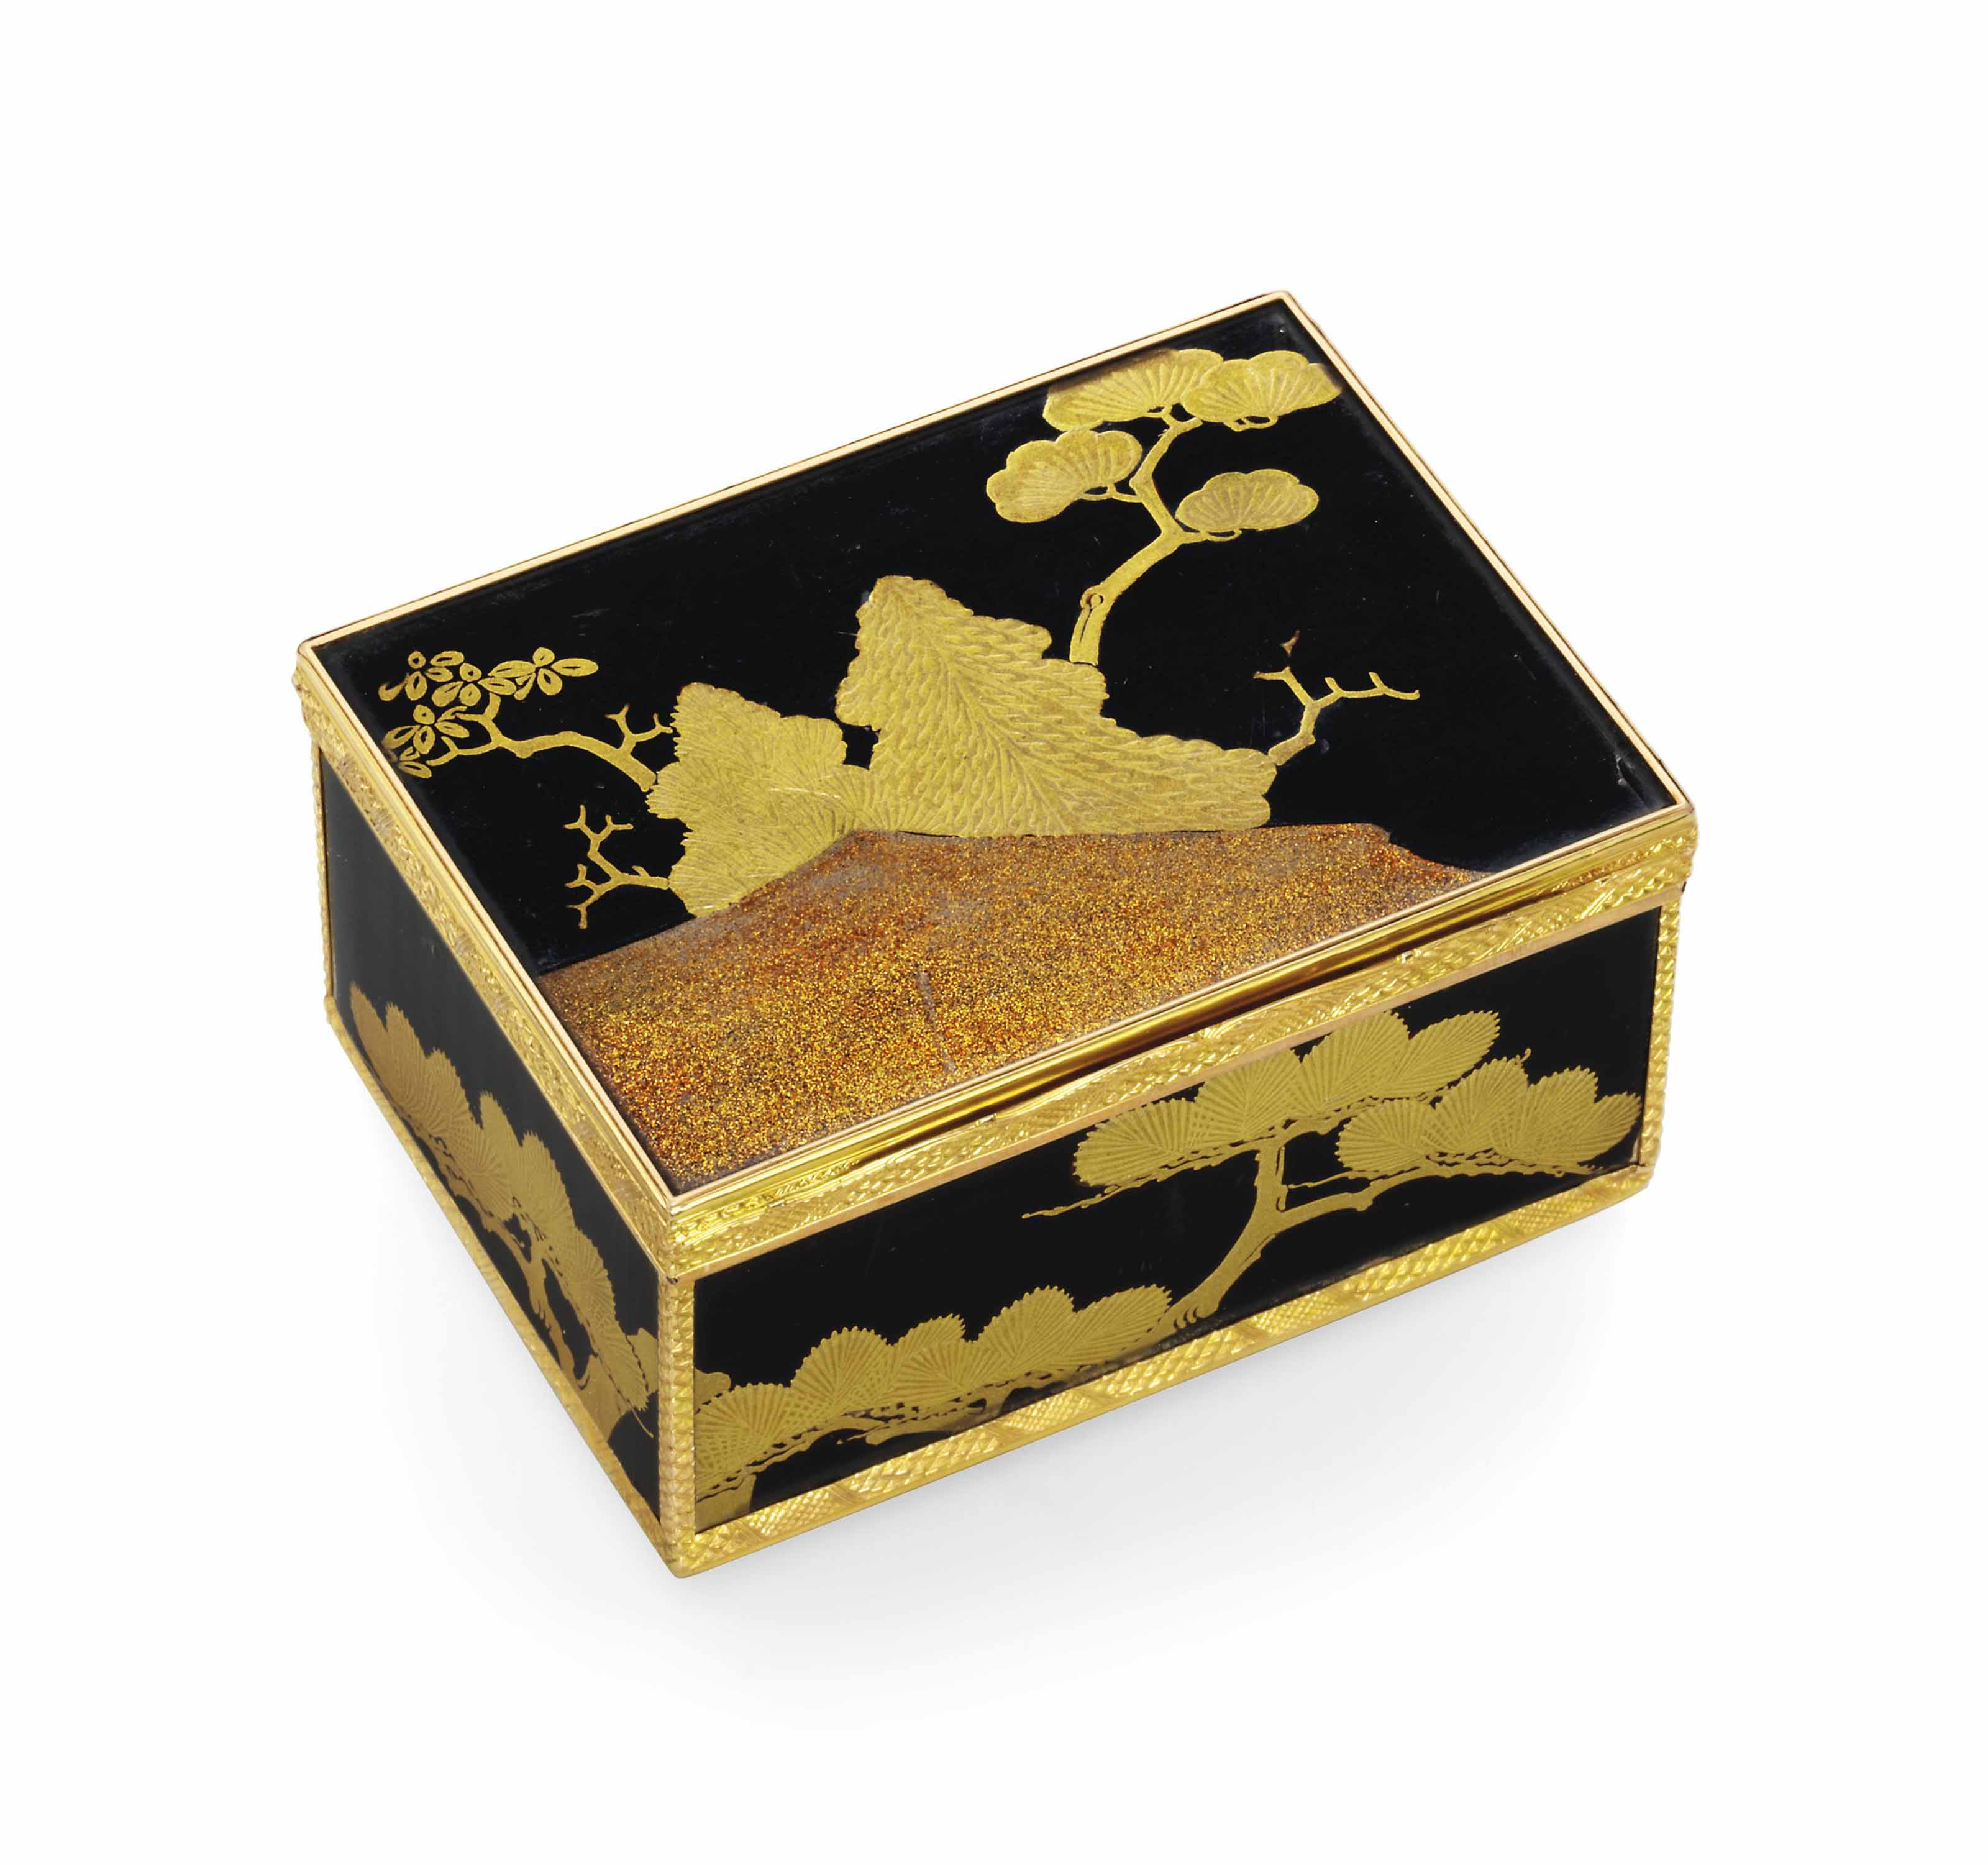 A LOUIS XV GOLD-MOUNTED LACQUER SNUFF-BOX